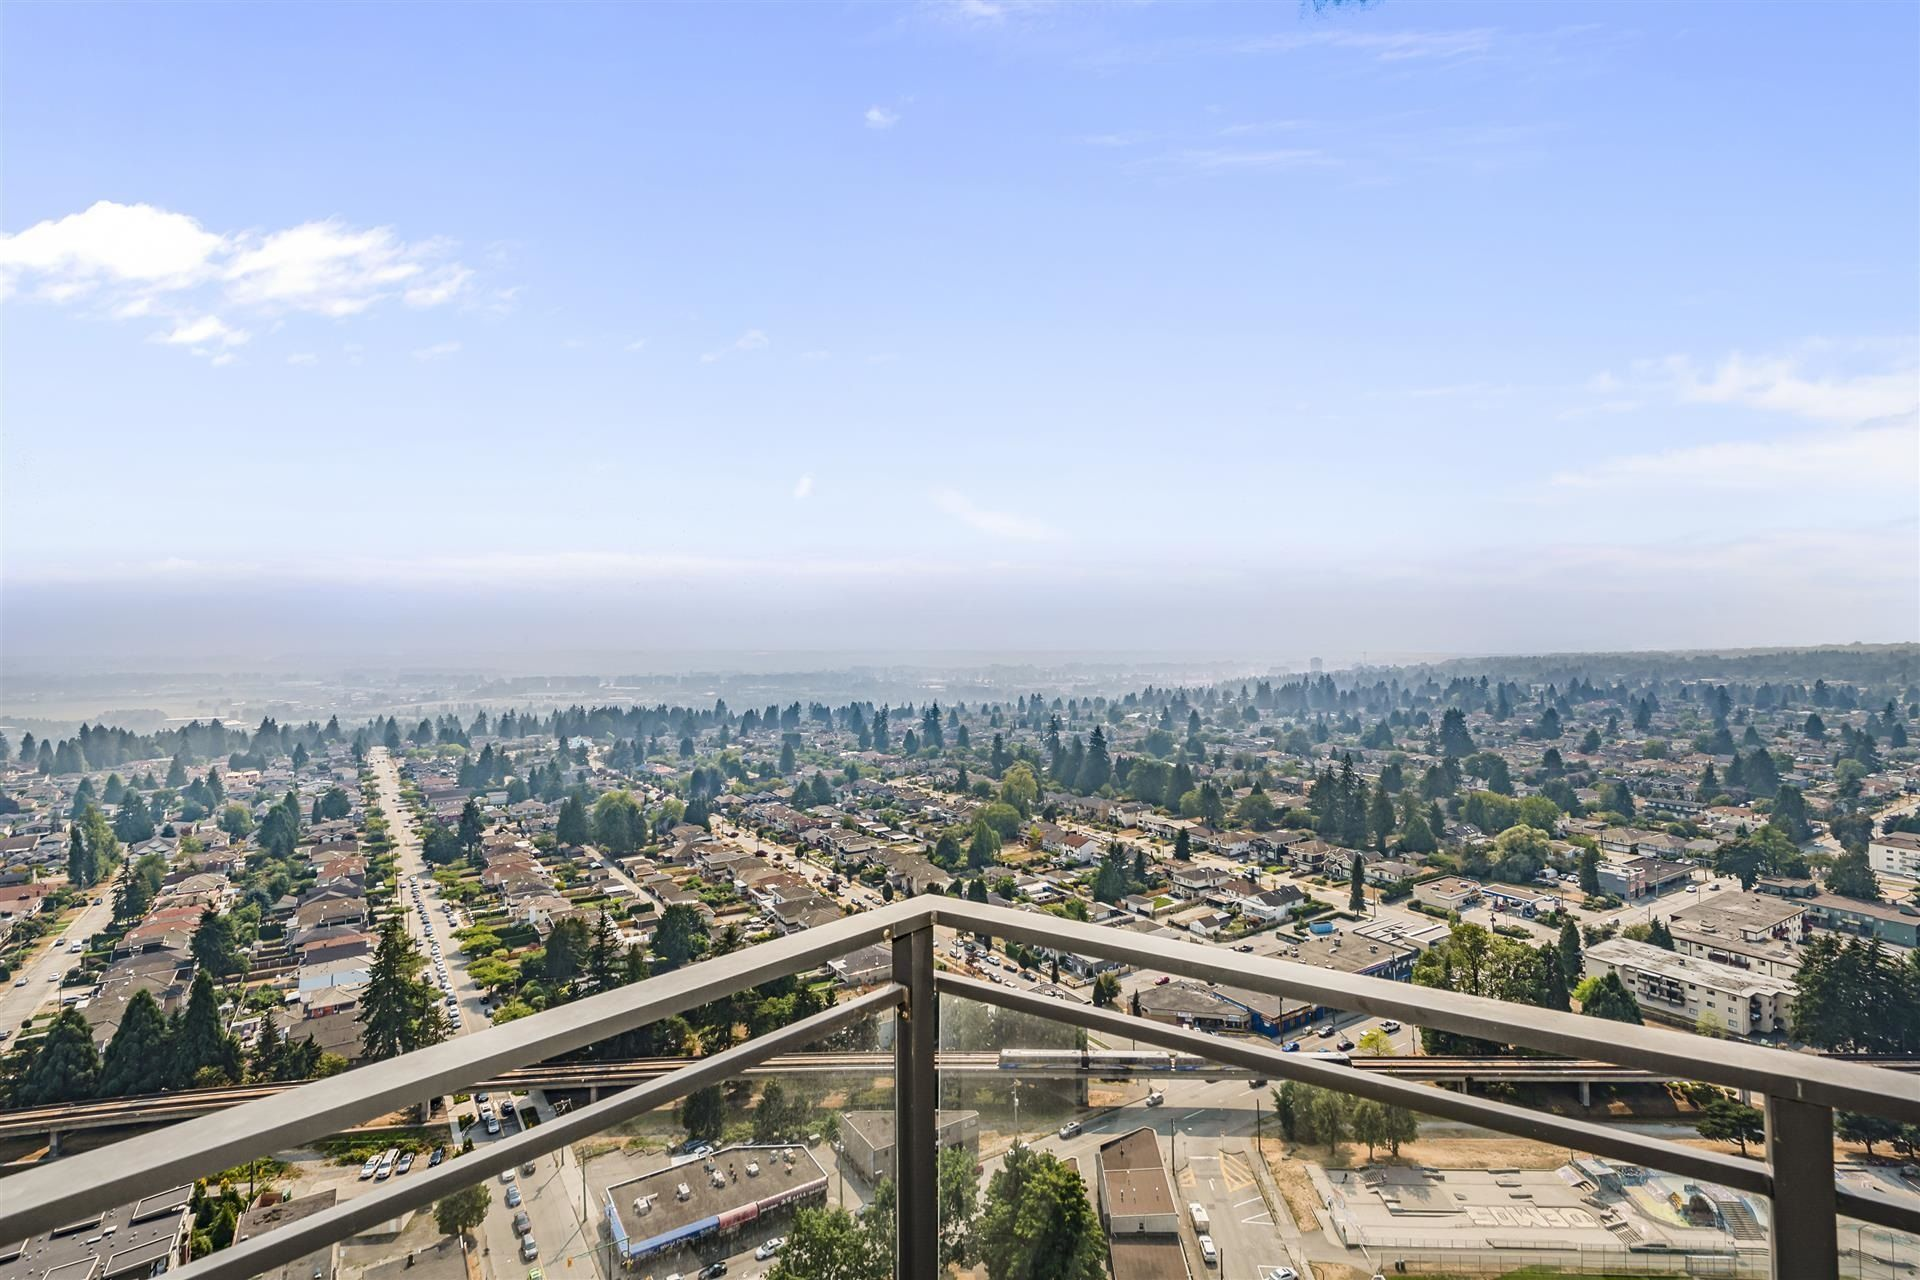 """Main Photo: 3801 4900 LENNOX Lane in Burnaby: Metrotown Condo for sale in """"THE PARK"""" (Burnaby South)  : MLS®# R2609917"""